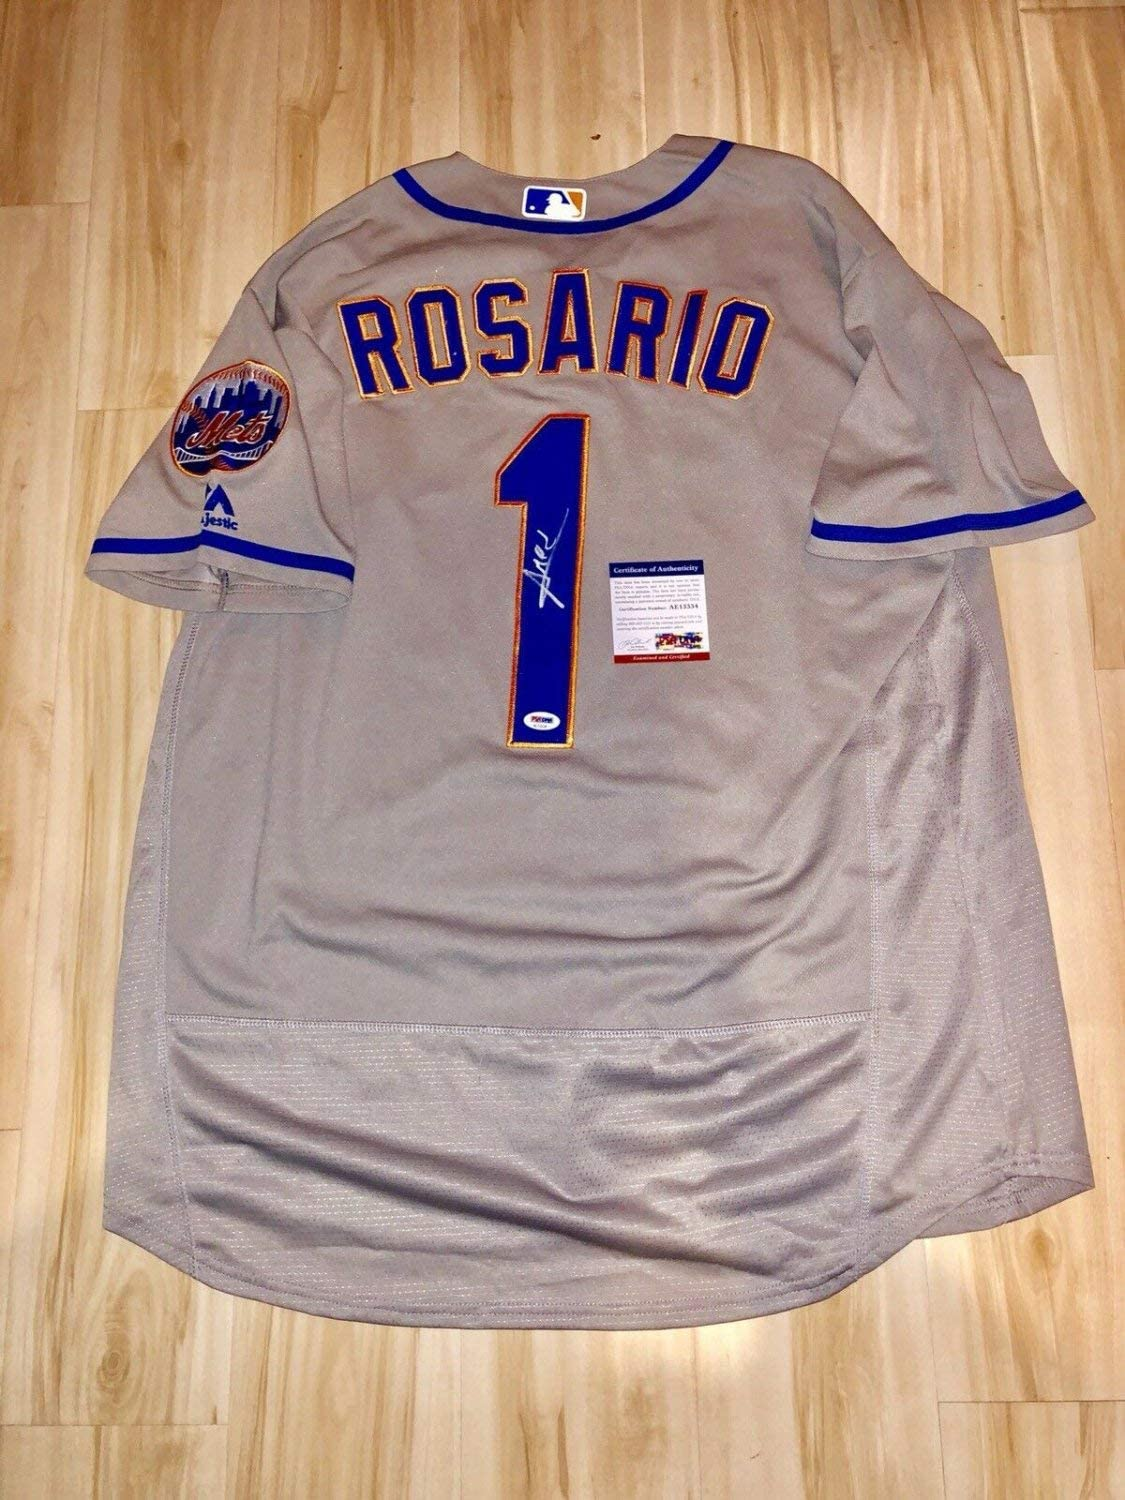 Amed Rosario Autographed Signed Hand New York Mets Jersey PSA DNA Cert